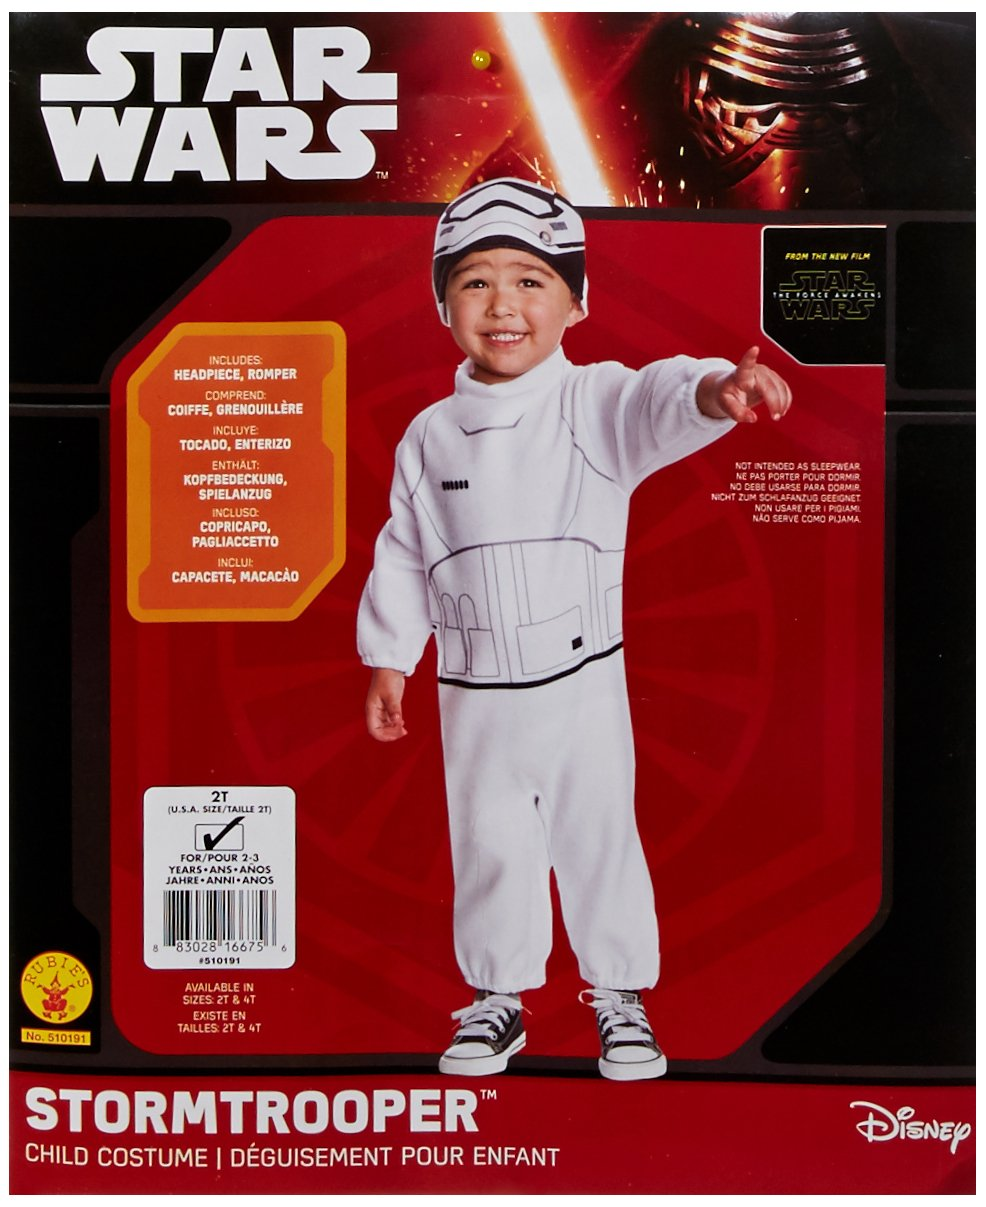 Amazon.com: Rubies Costume Boys Star Wars VII: The Force Awakens Stormtrooper Costume, Multicolor, 2T: Toys & Games